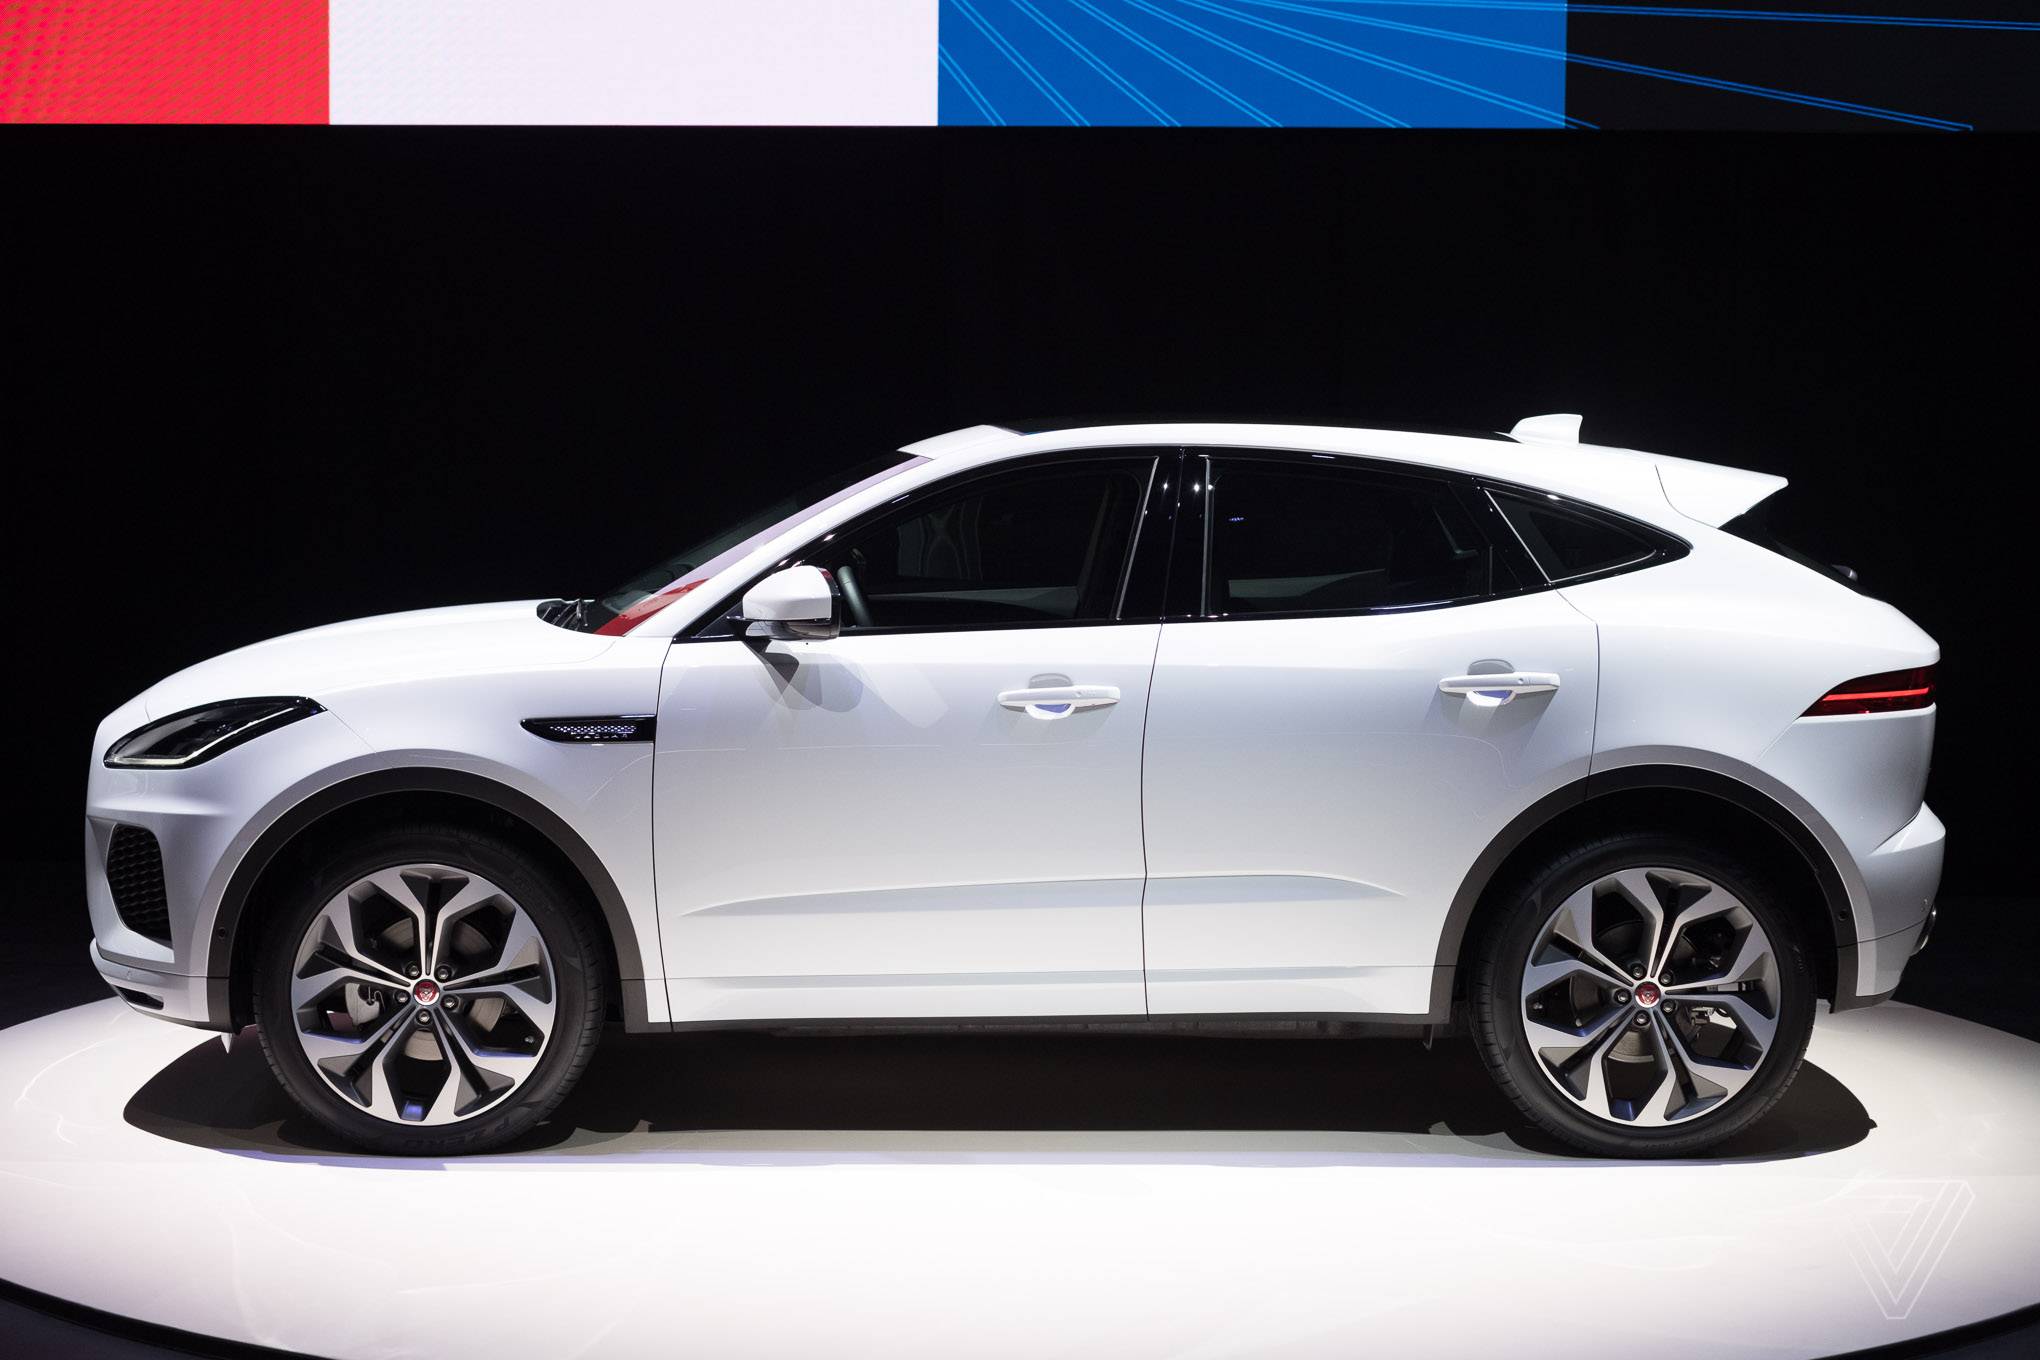 jaguar reveals e pace the crossover suv for millennial couples the verge. Black Bedroom Furniture Sets. Home Design Ideas